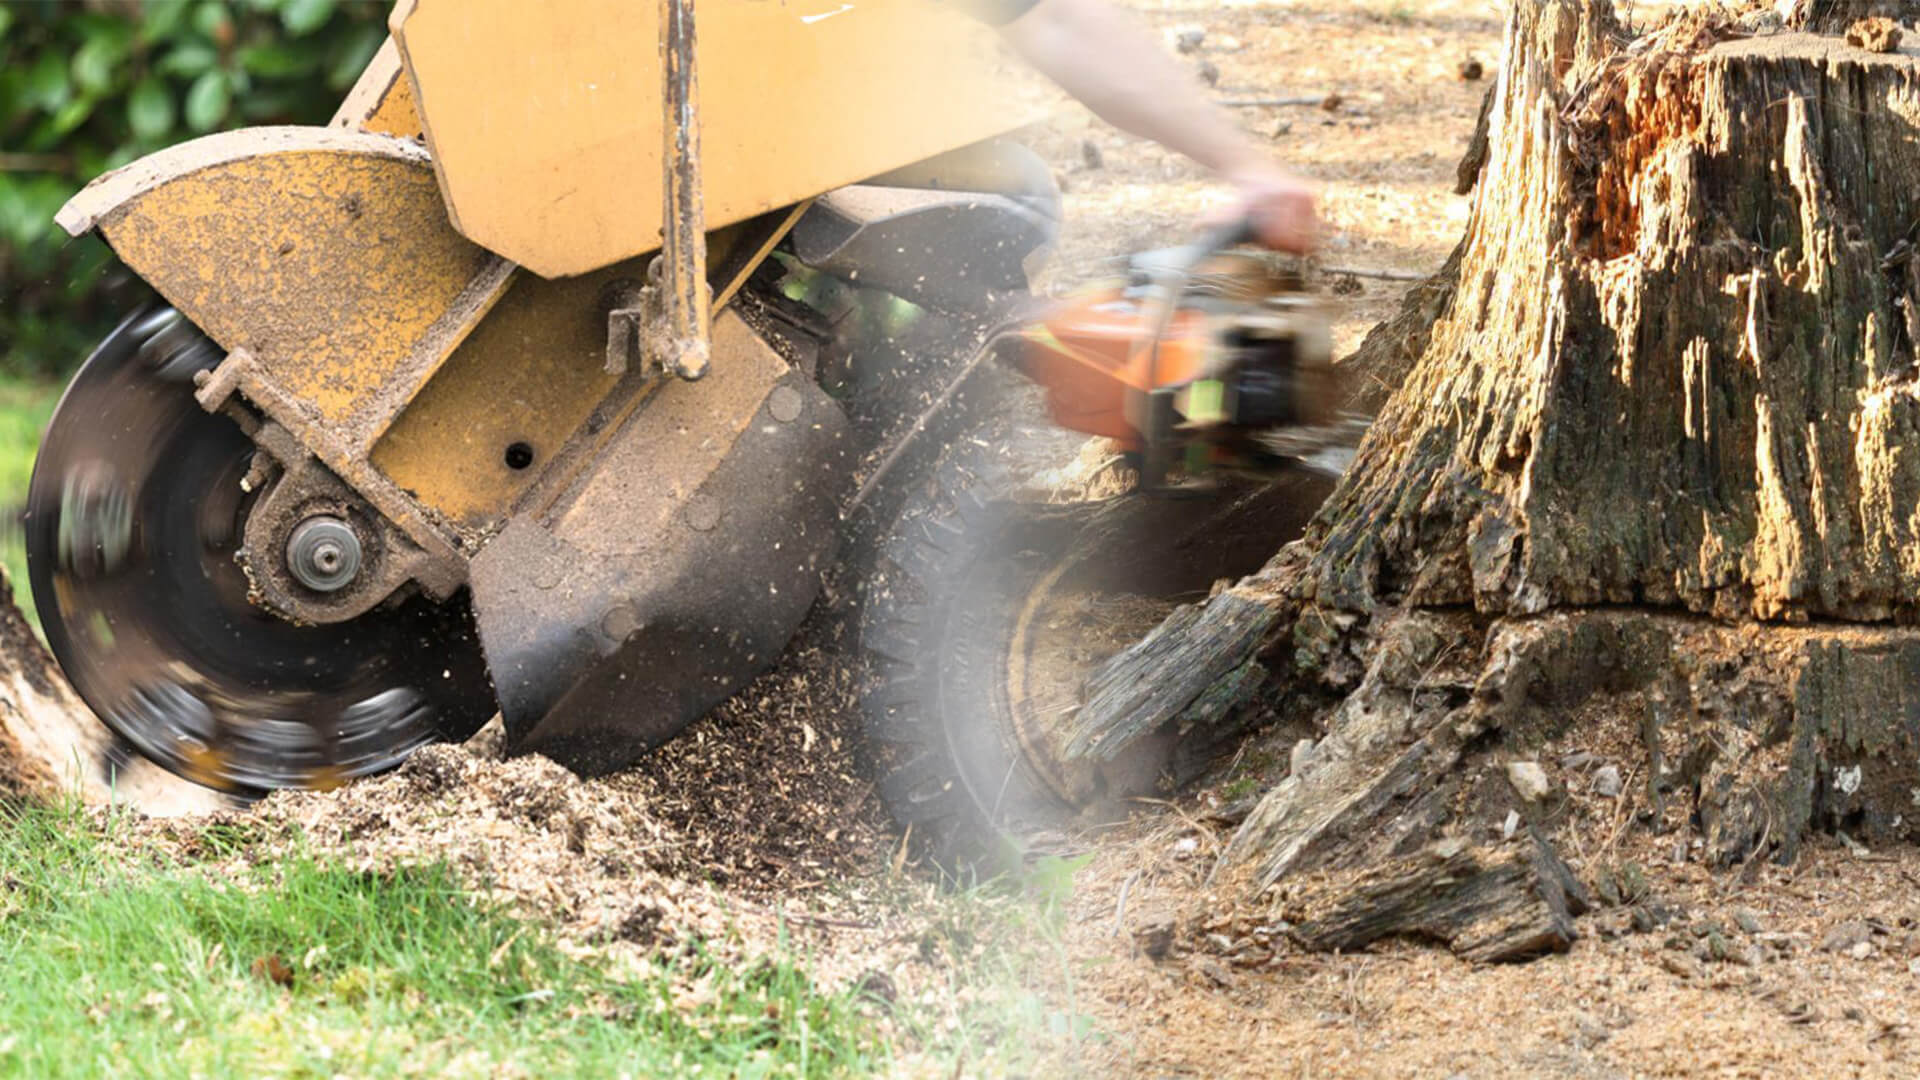 Stump grinding & removal-Citrus Park FL Tree Trimming and Stump Grinding Services-We Offer Tree Trimming Services, Tree Removal, Tree Pruning, Tree Cutting, Residential and Commercial Tree Trimming Services, Storm Damage, Emergency Tree Removal, Land Clearing, Tree Companies, Tree Care Service, Stump Grinding, and we're the Best Tree Trimming Company Near You Guaranteed!